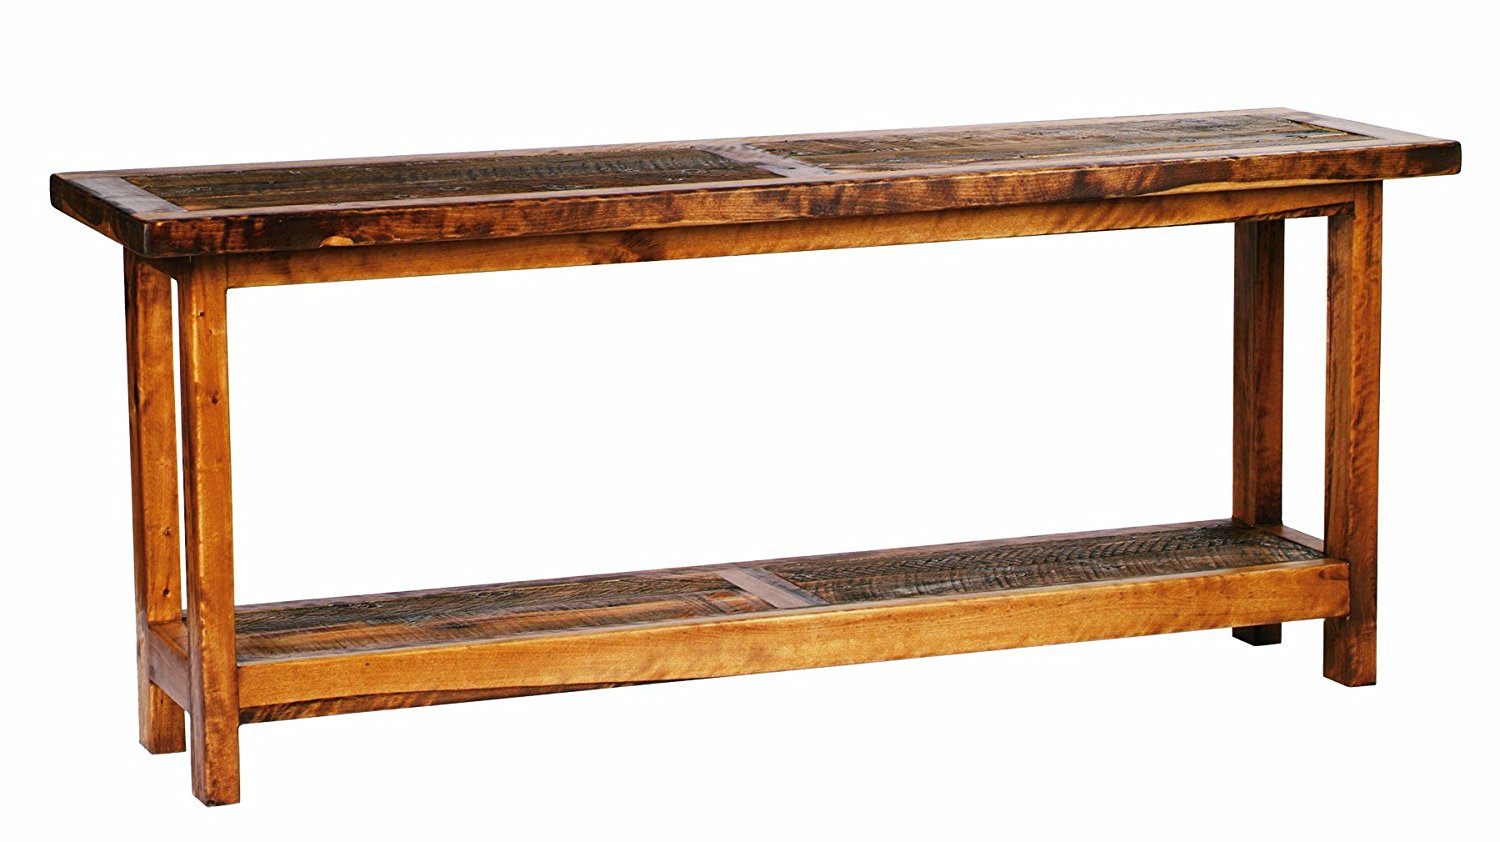 Mountain Woods Furniture The Wyoming Collection Sofa Table, 4'